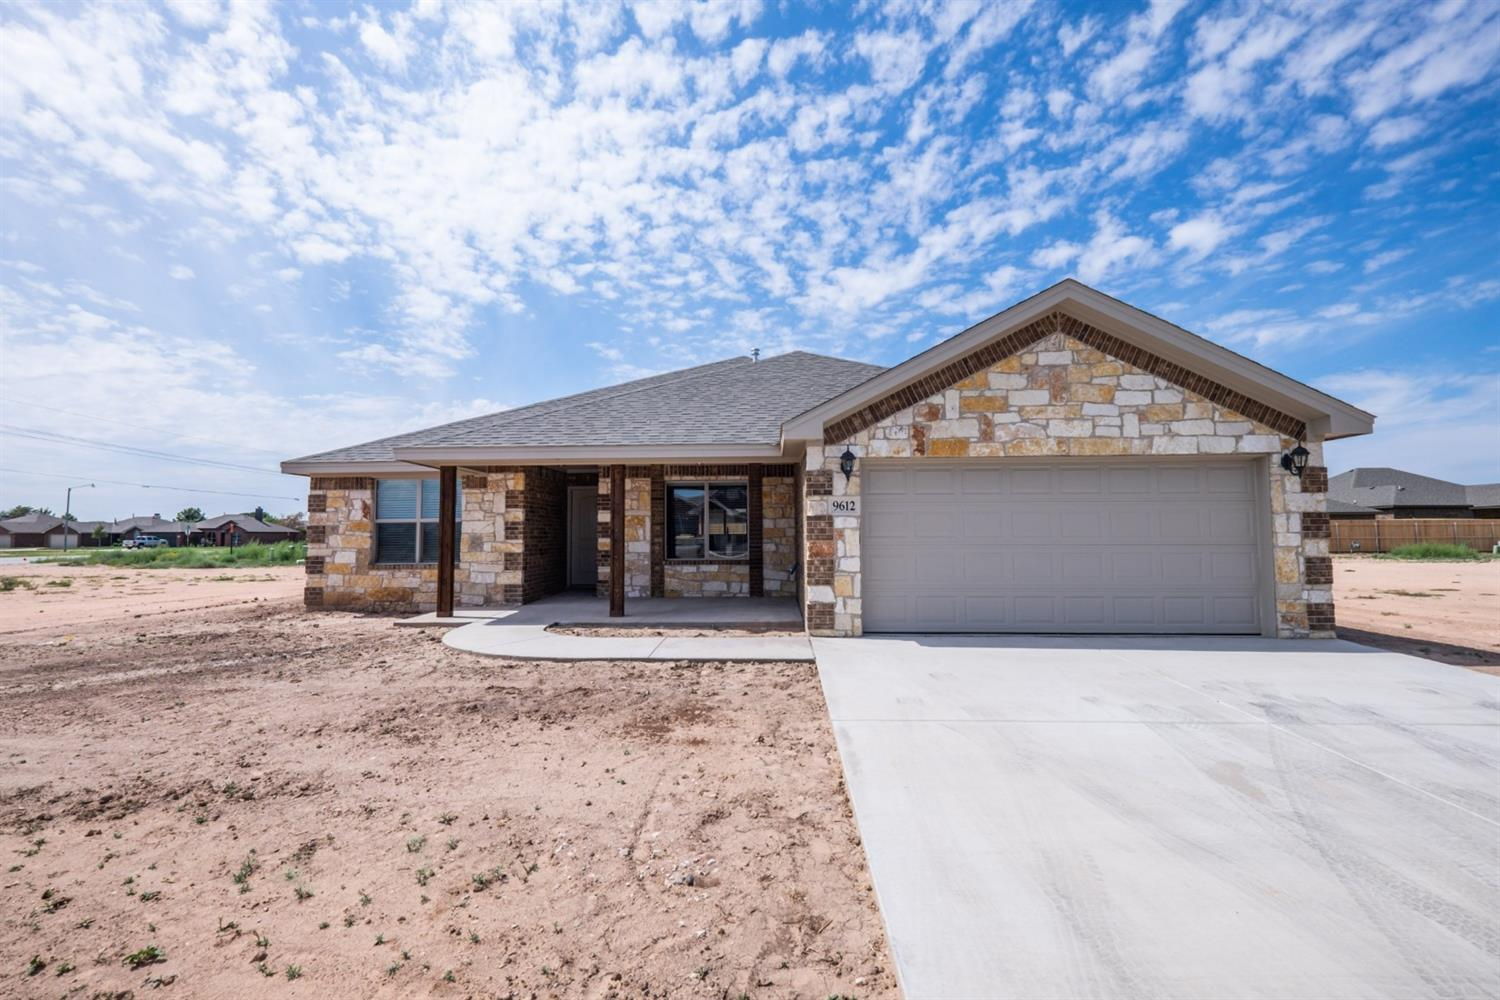 New construction 3 bedroom, 2 bathroom, and 2-car garage home in Day Estates neighborhood. Built for comfort and style, this beautiful brick and stone home has an open concept with 10' ceilings throughout entire house. Located in Frienship ISD, making it a great location! Special features include: double ovens in kitchen, electric fireplace with oak mantle, granite countertops throughout, walk-in closet in Master bedroom, a jet tub in master bath, and vinyl plank flooring in living room and kitchen.